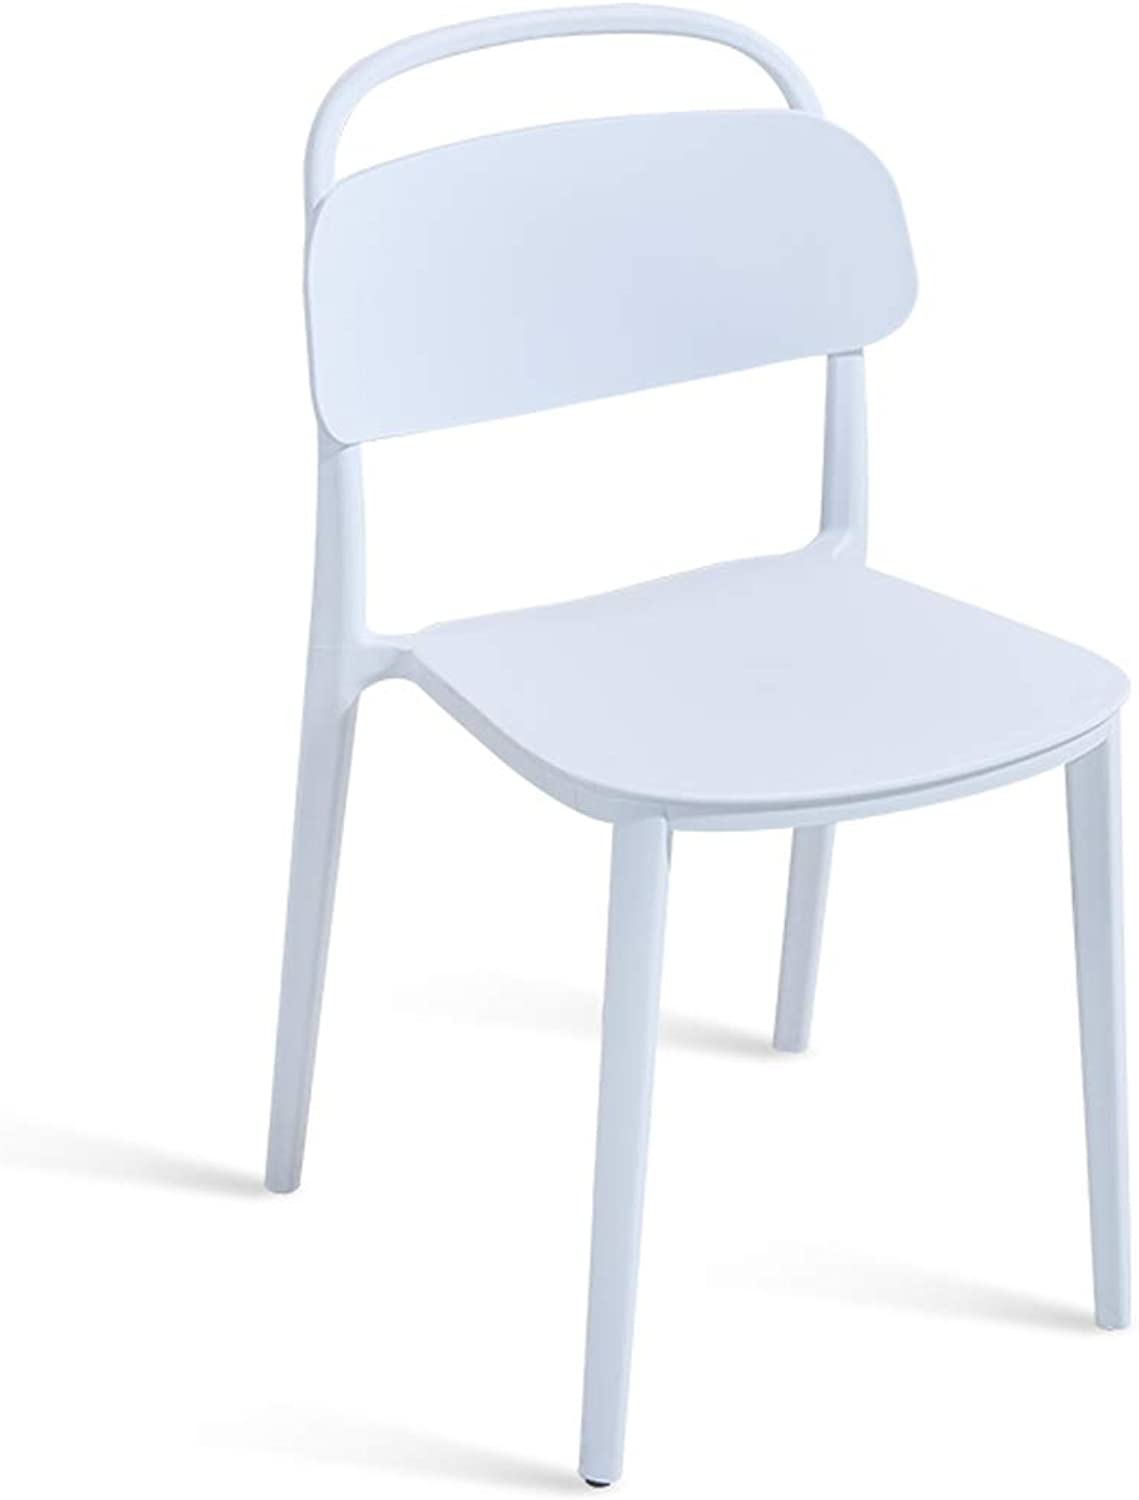 LRW Modern Nordic Dining Chair, Home Creative Plastic Chair Restaurant, Leisure Backrest Stool, White